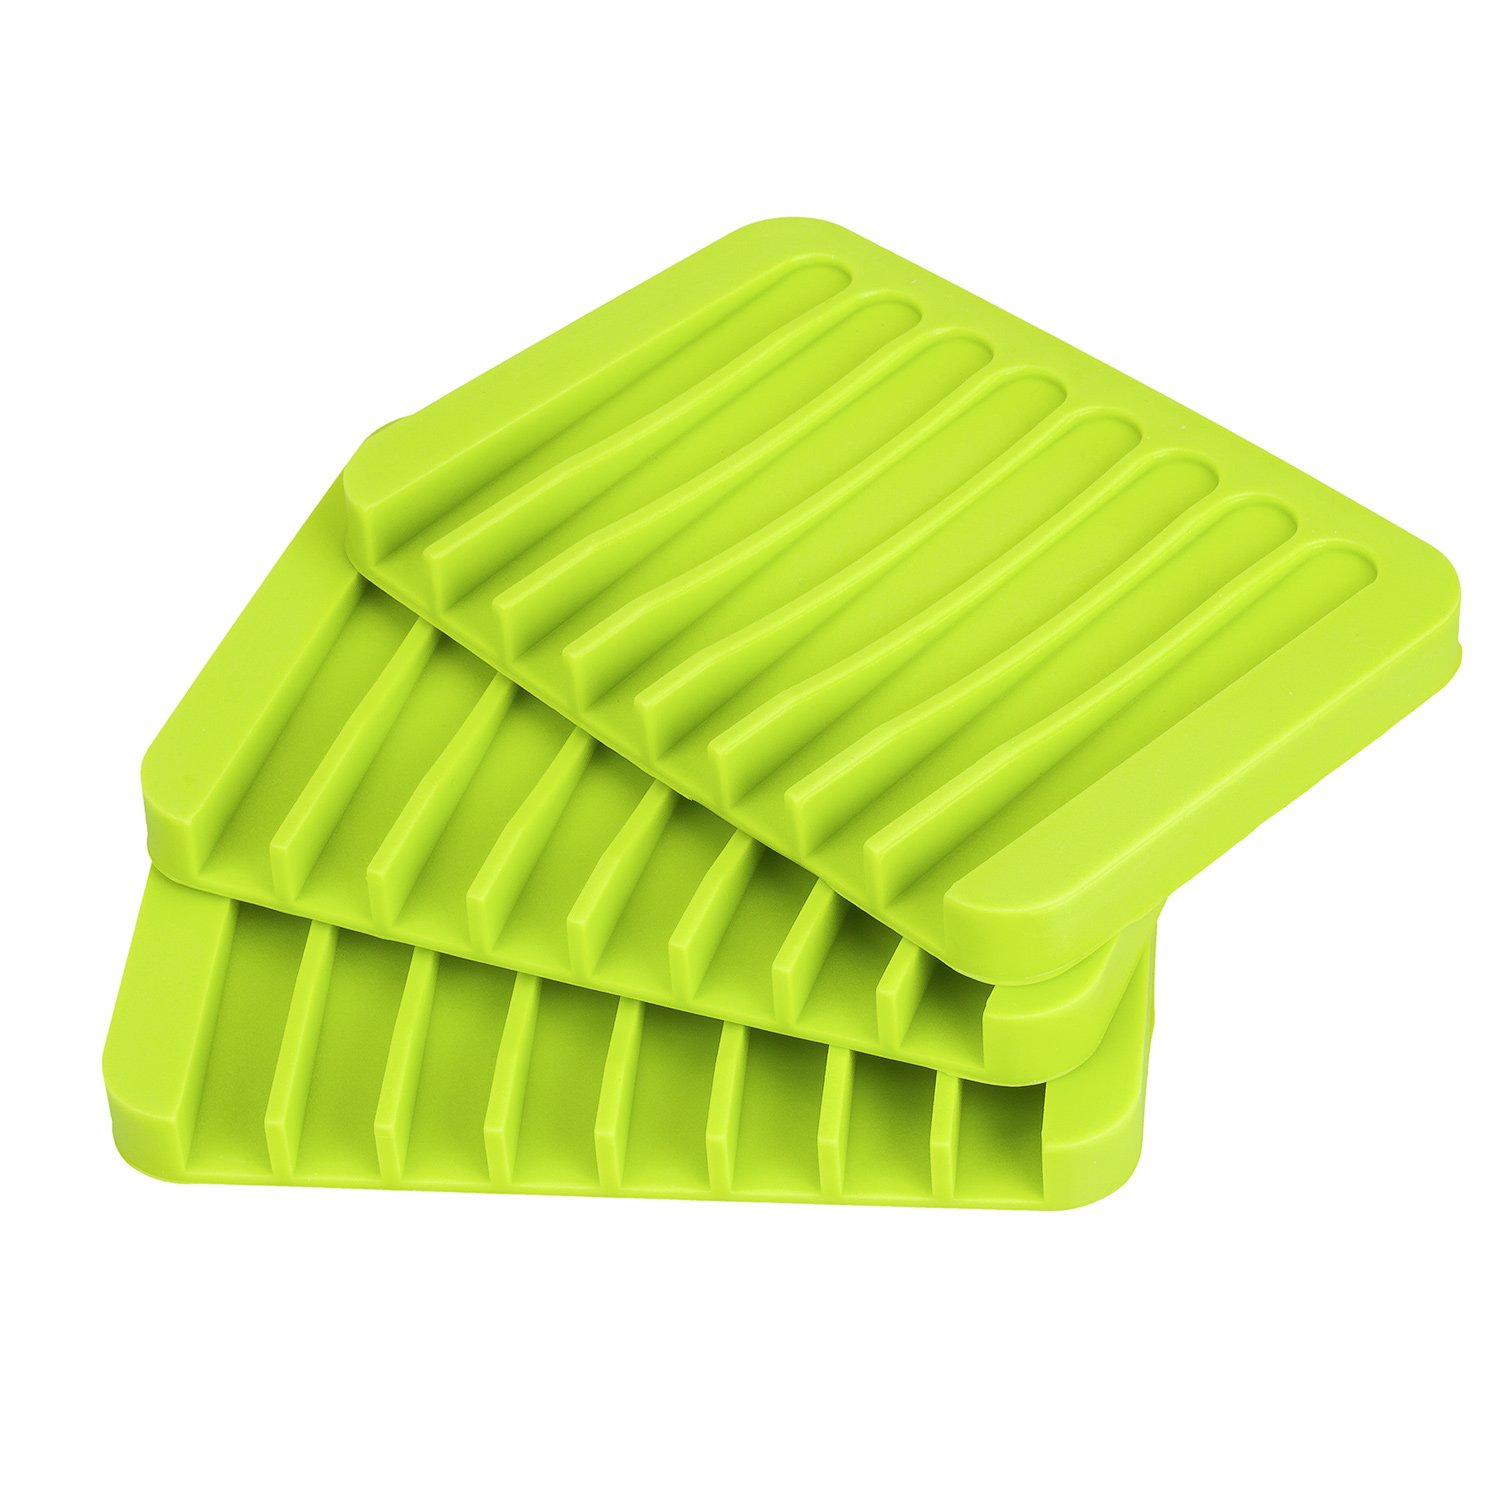 YXChome Soap Tray Silicone Sponge Tray//3 Pack Green Soap Rest//Soap Holder-Soap Saver//Shower Waterfall Soap Dishes and Sponge Rest for Bathroom and Kitchen